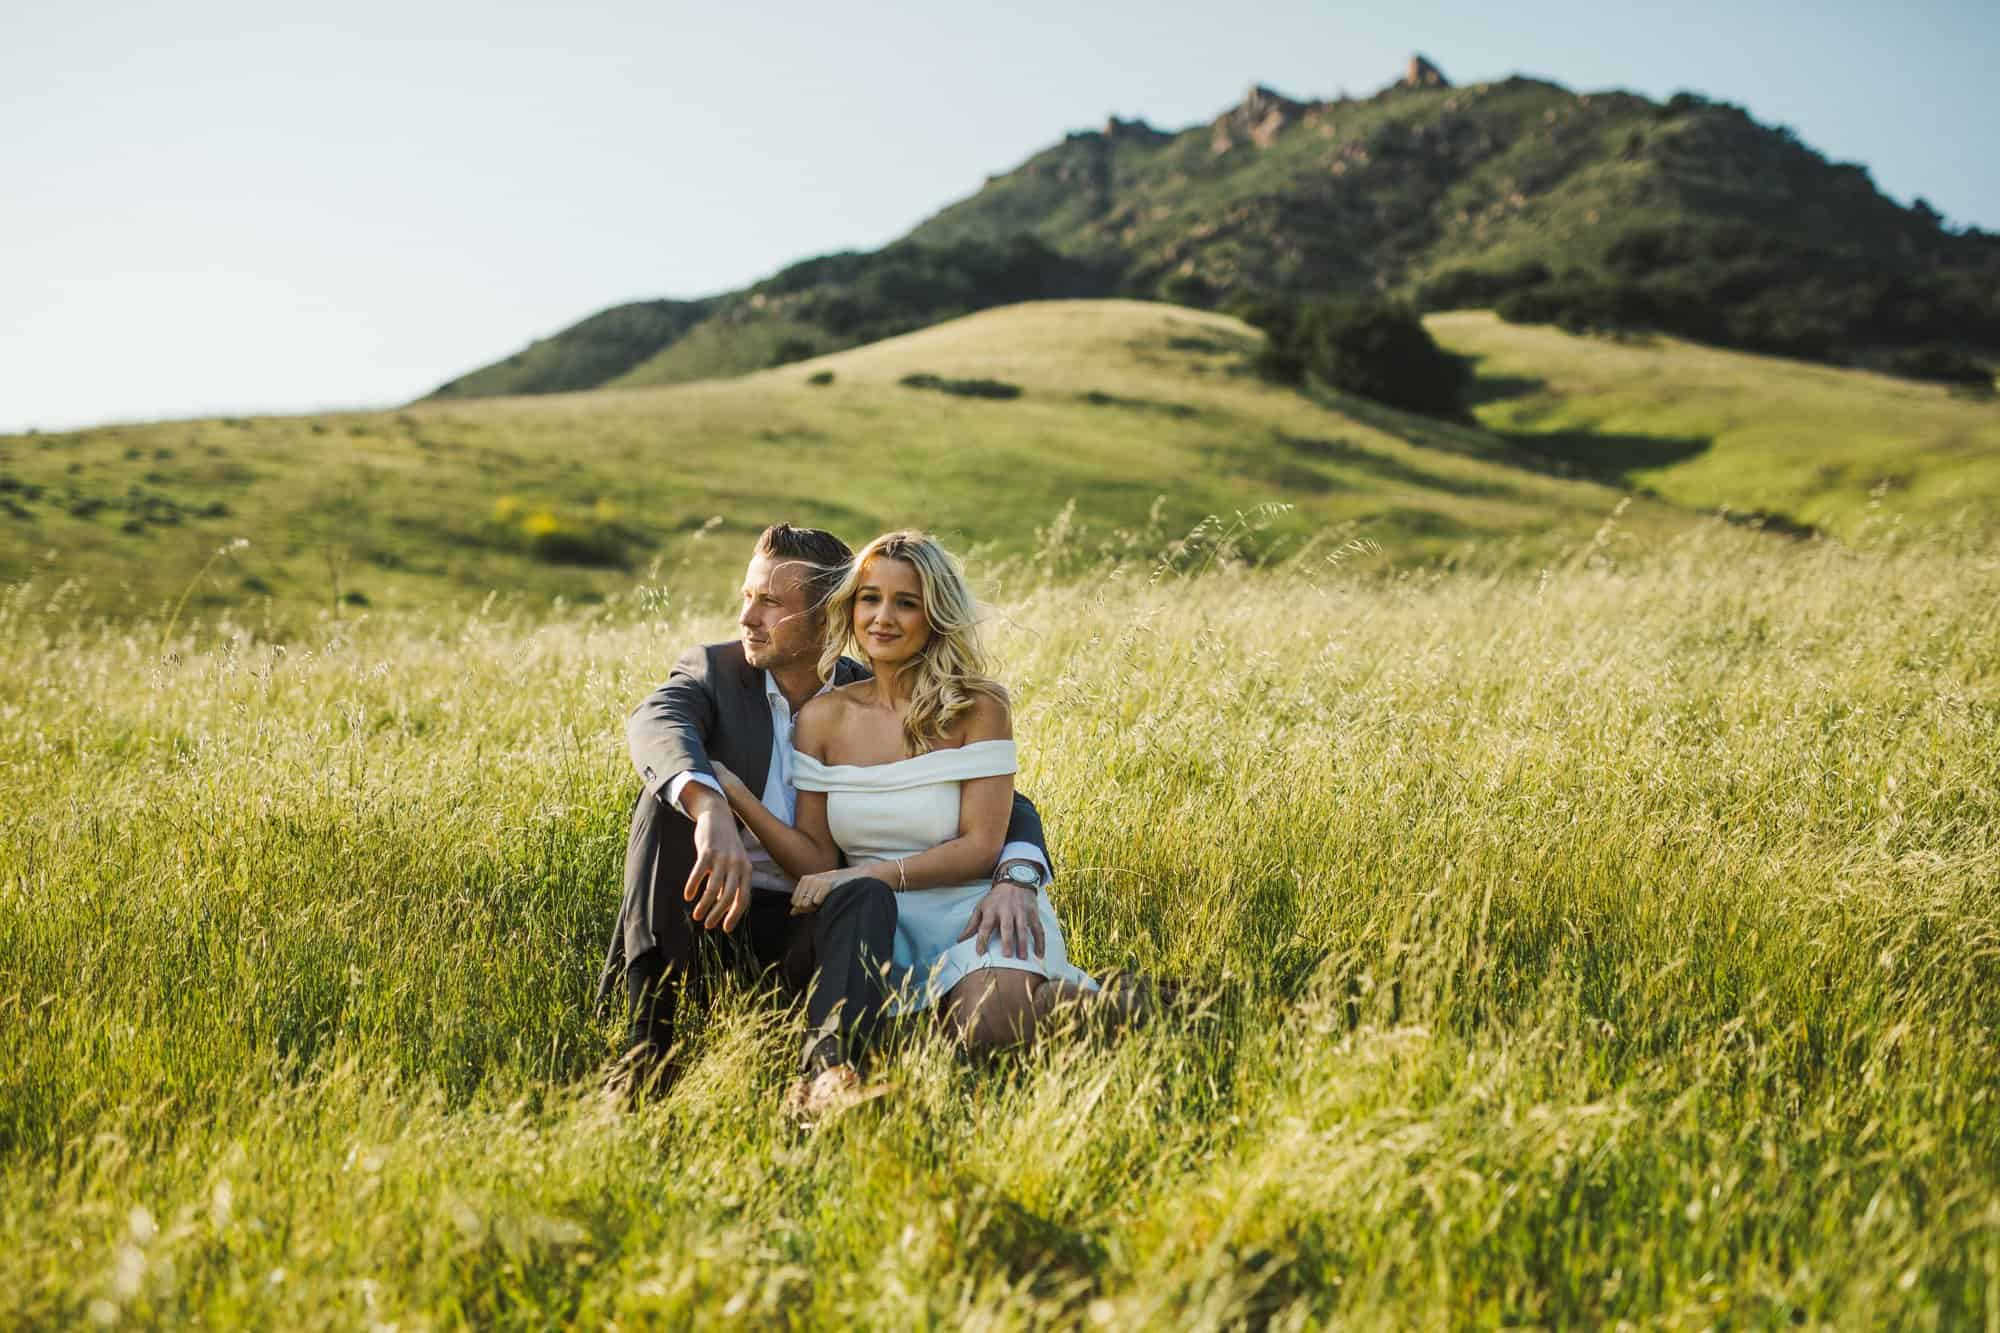 bishops peak engagement photos